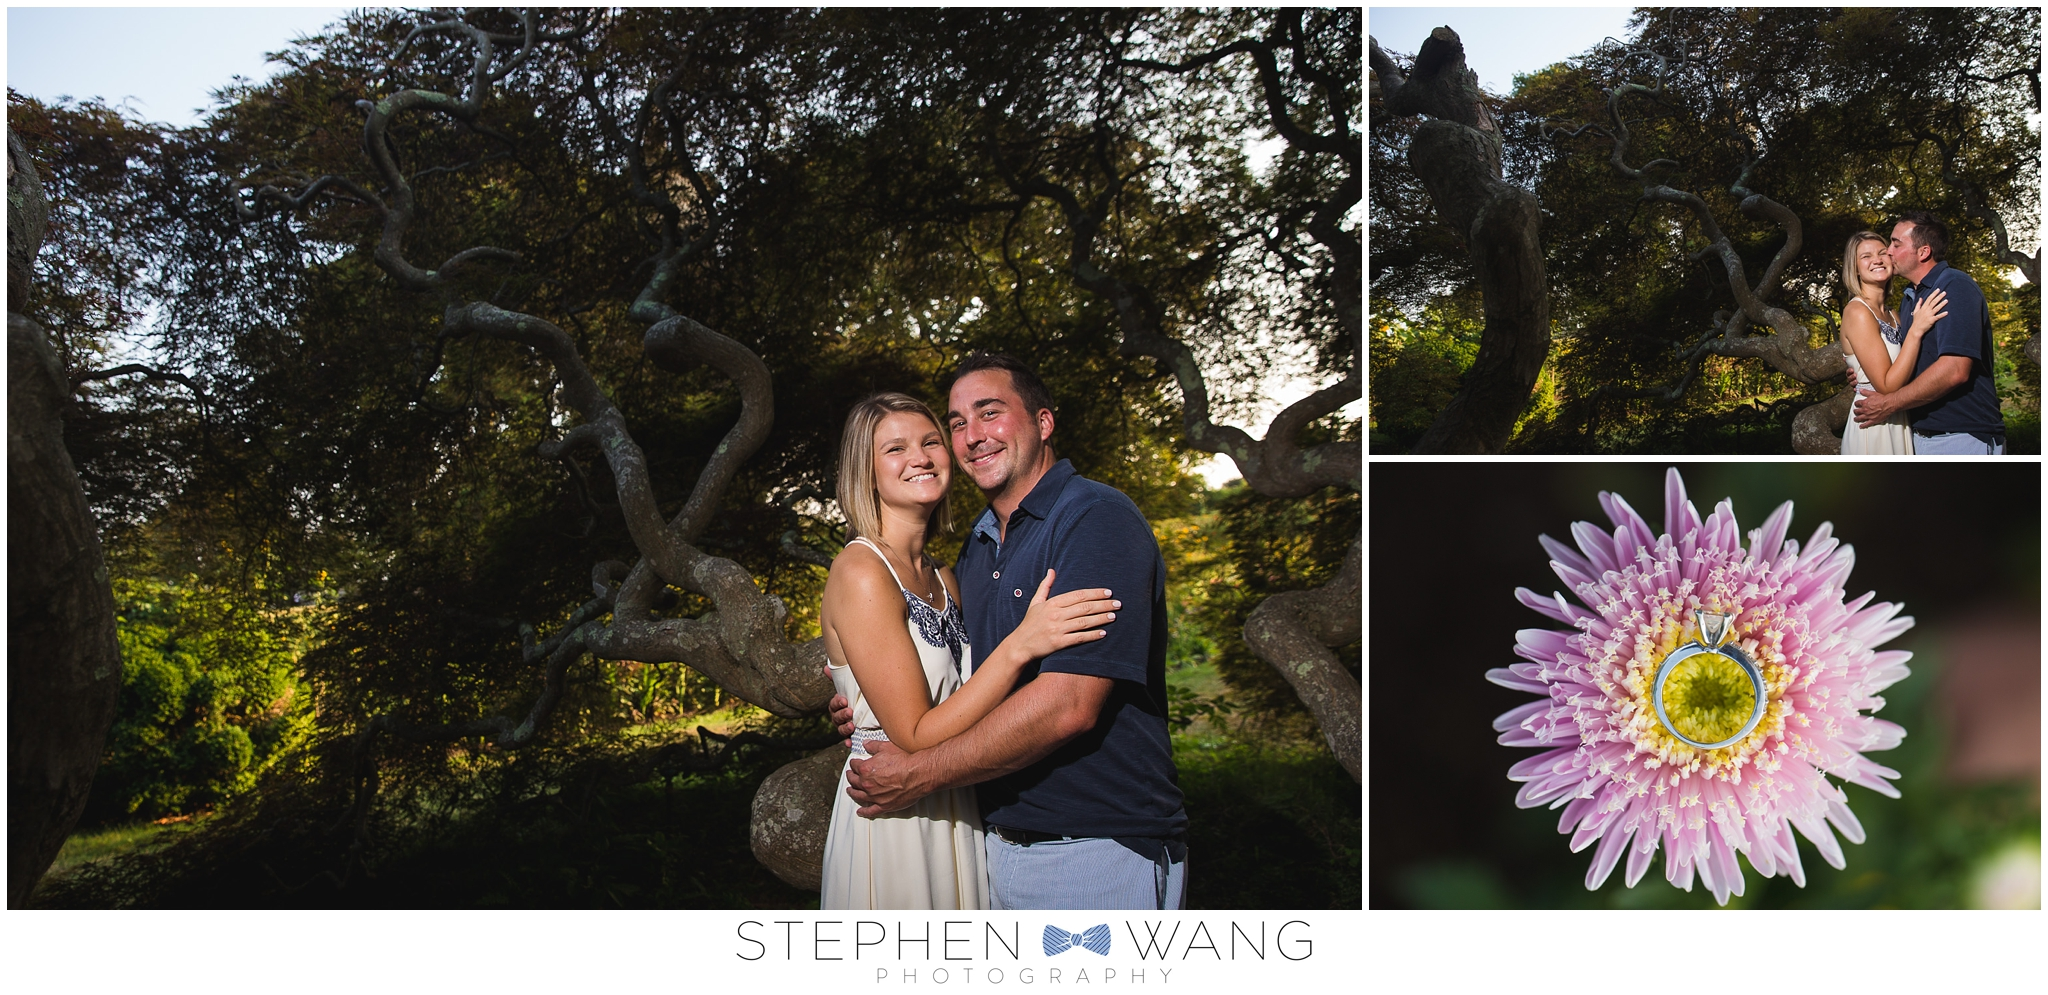 stephen wang photography connecticut wedding photographer harkness park engagement session ct shoreline eolia mansion _0003.jpg